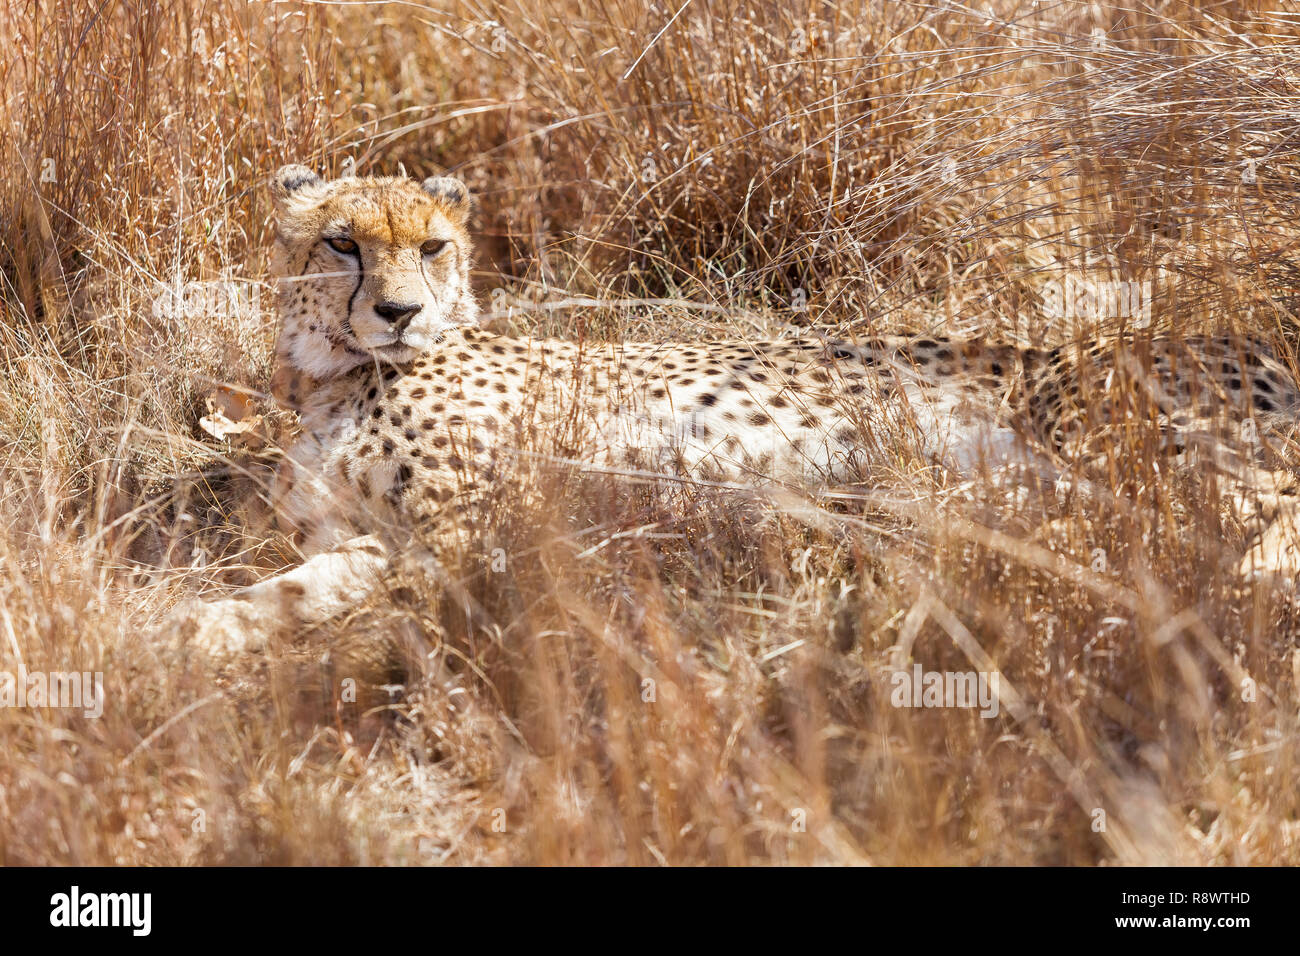 African Cheetah Sitting In Long Grass On Safari In A South